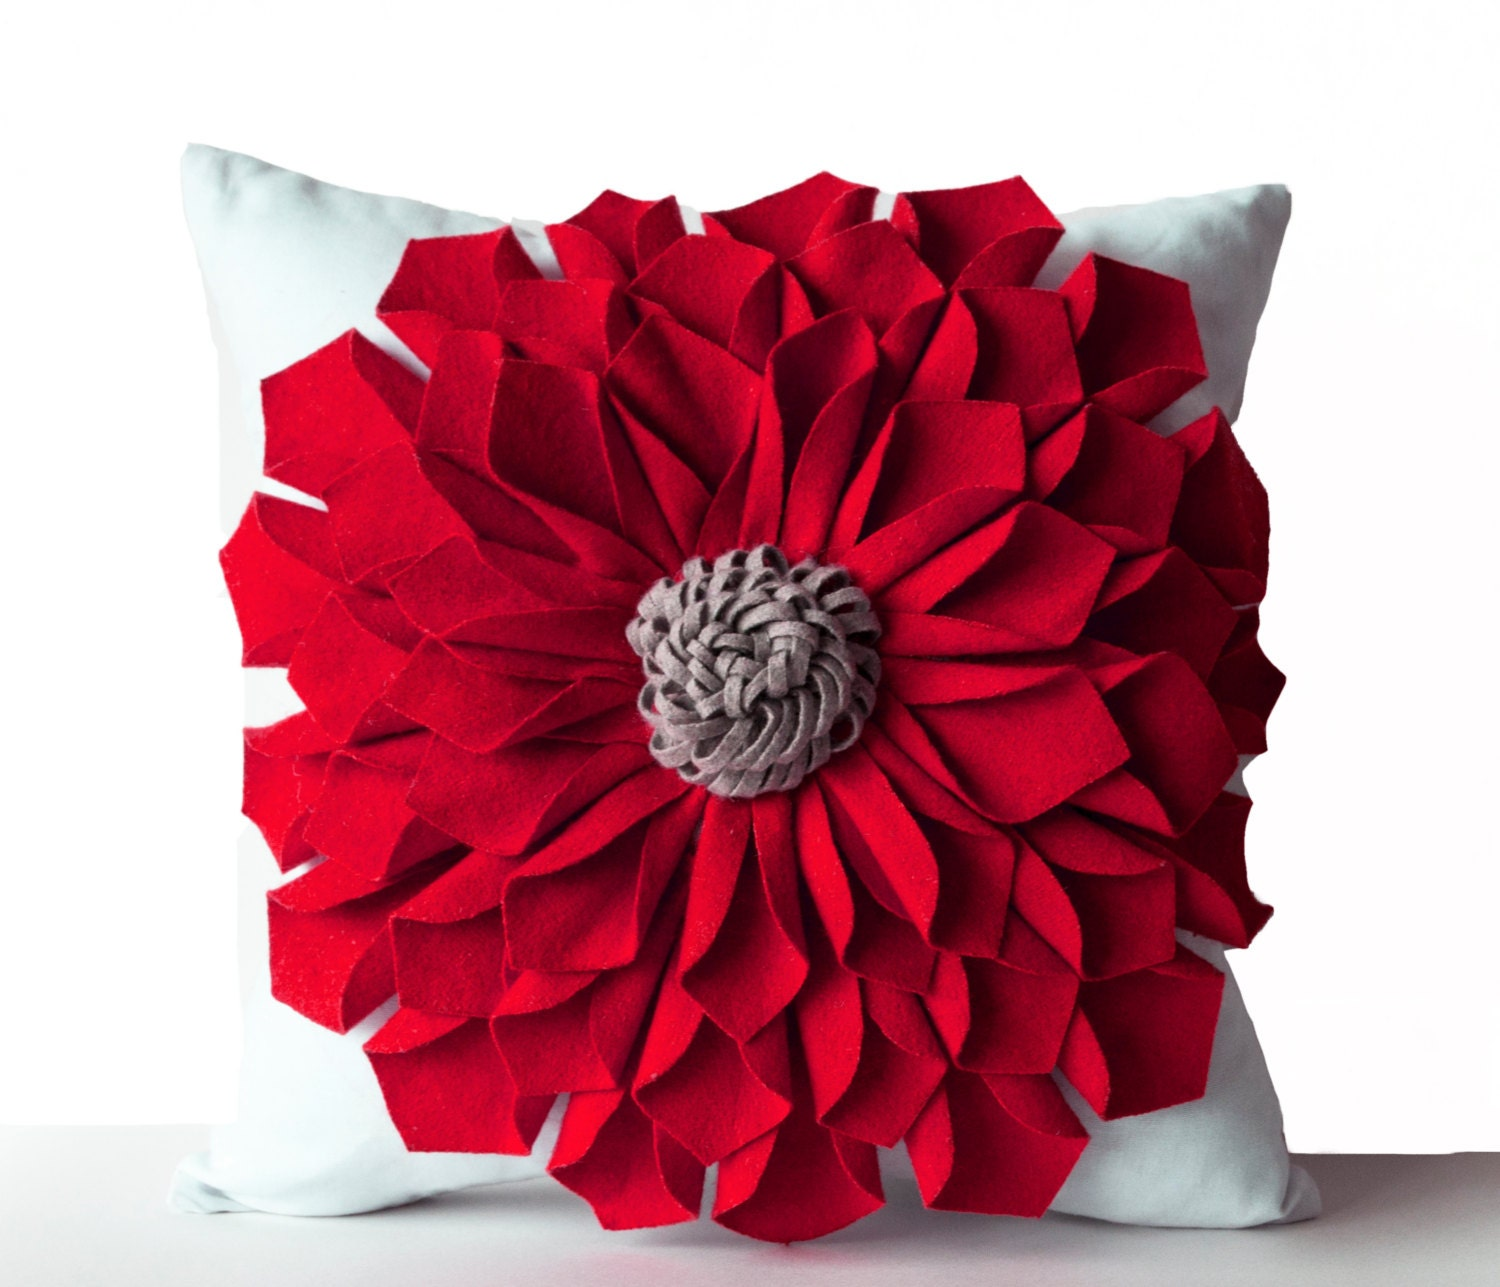 Decorative Pillows Flowers : Felt Flower Pillow Cover Red Gray White Pillow Case Floral